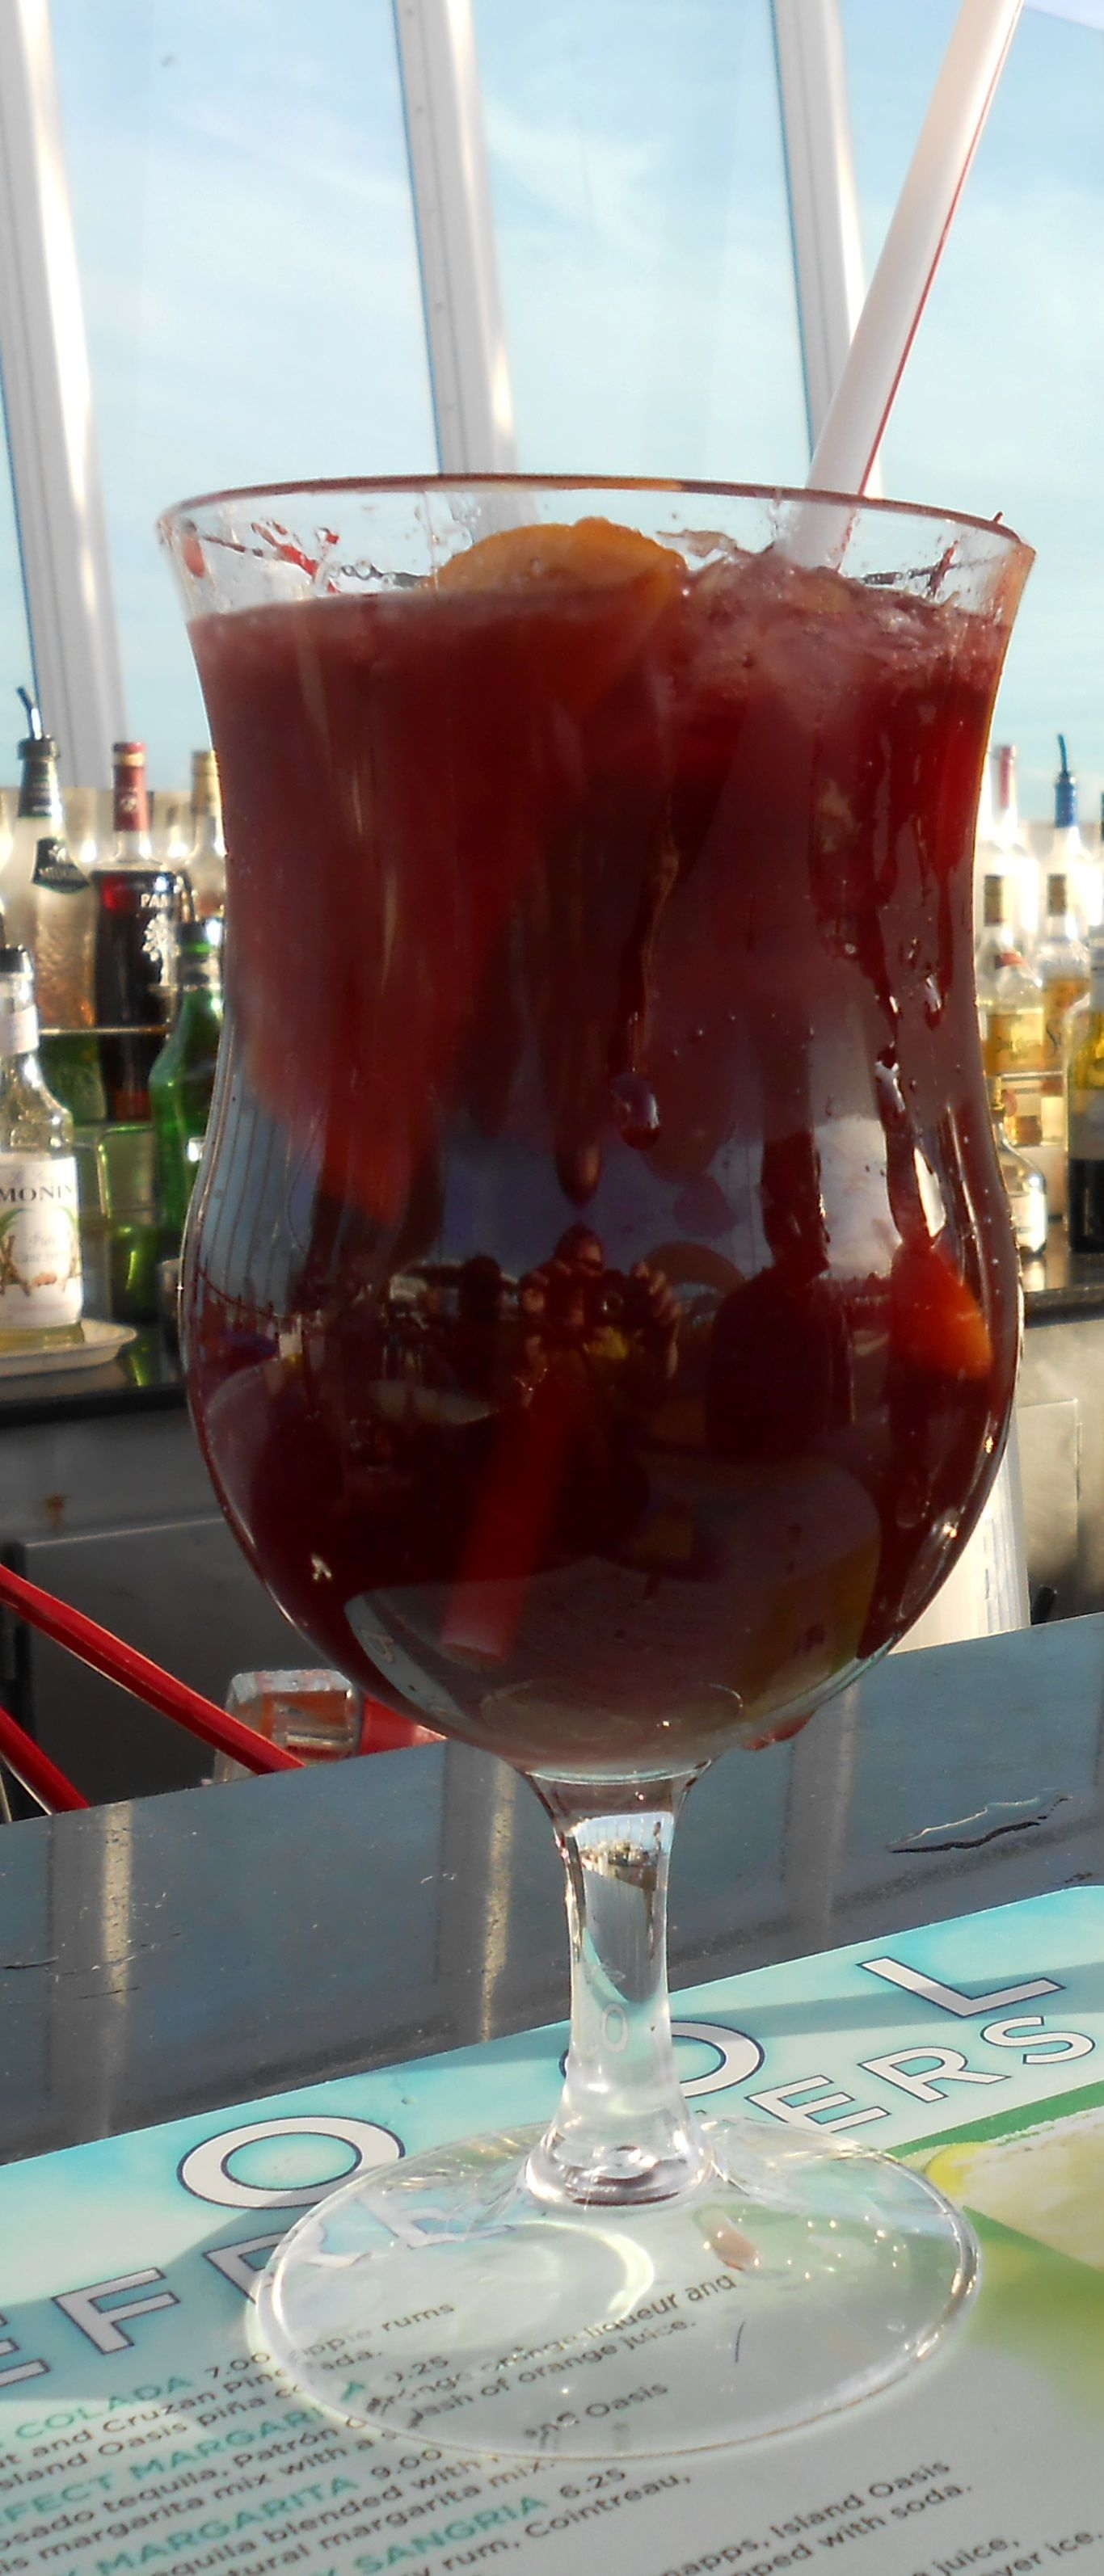 Royal Caribbean S Torched Cherry Sangria 3 Oz Merlot 1 2 Oz Bacardi Torched Cherry Rum 1 2 Oz Cointreau 3 4 Oz Cherry Sangria Fall Sangria Recipes Sangria